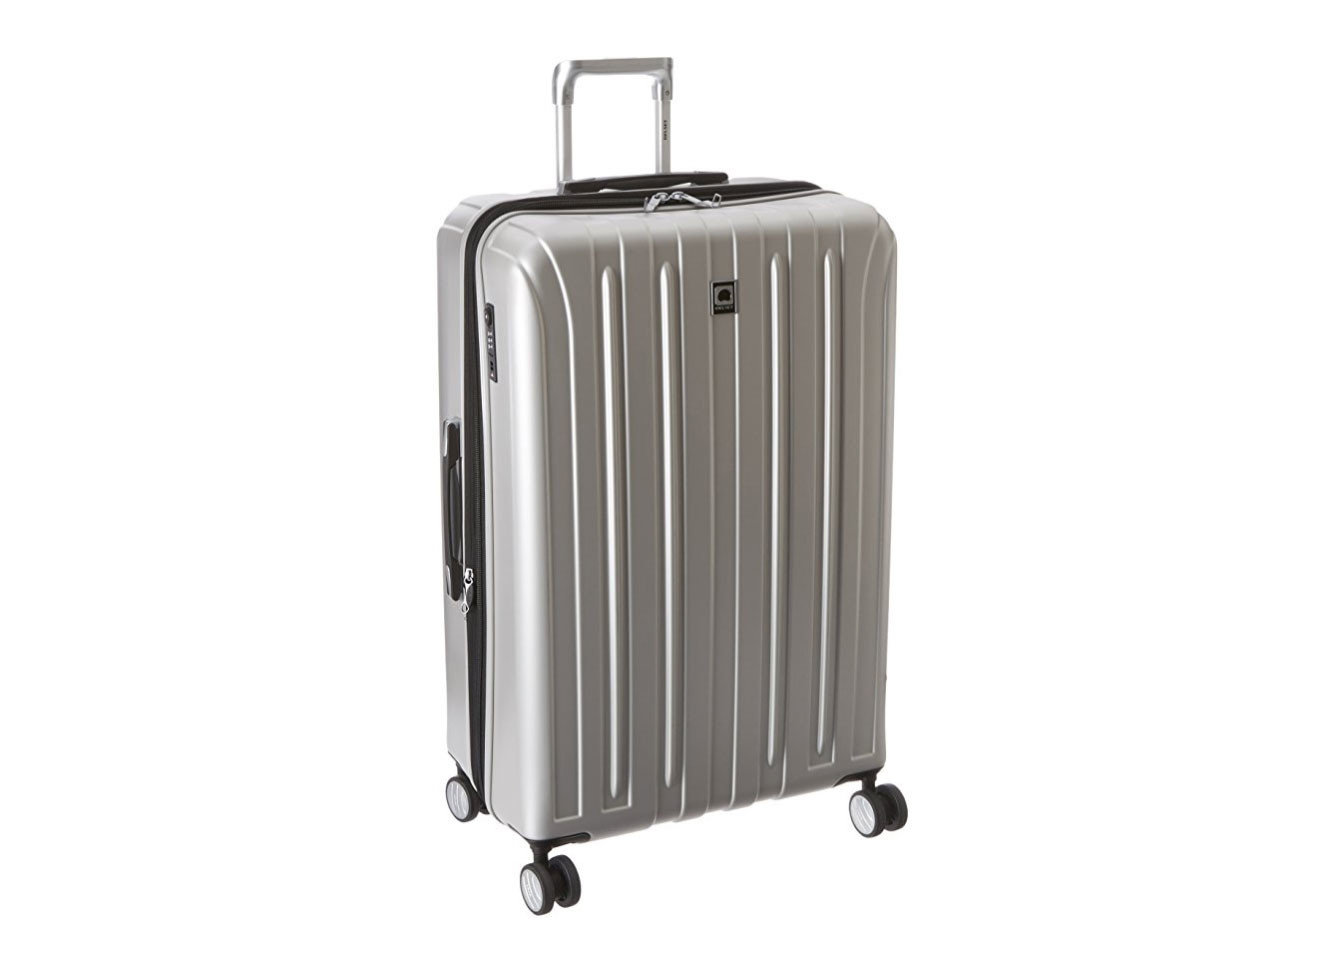 Travel Tips luggage suitcase hand luggage product appliance handcart kitchen appliance